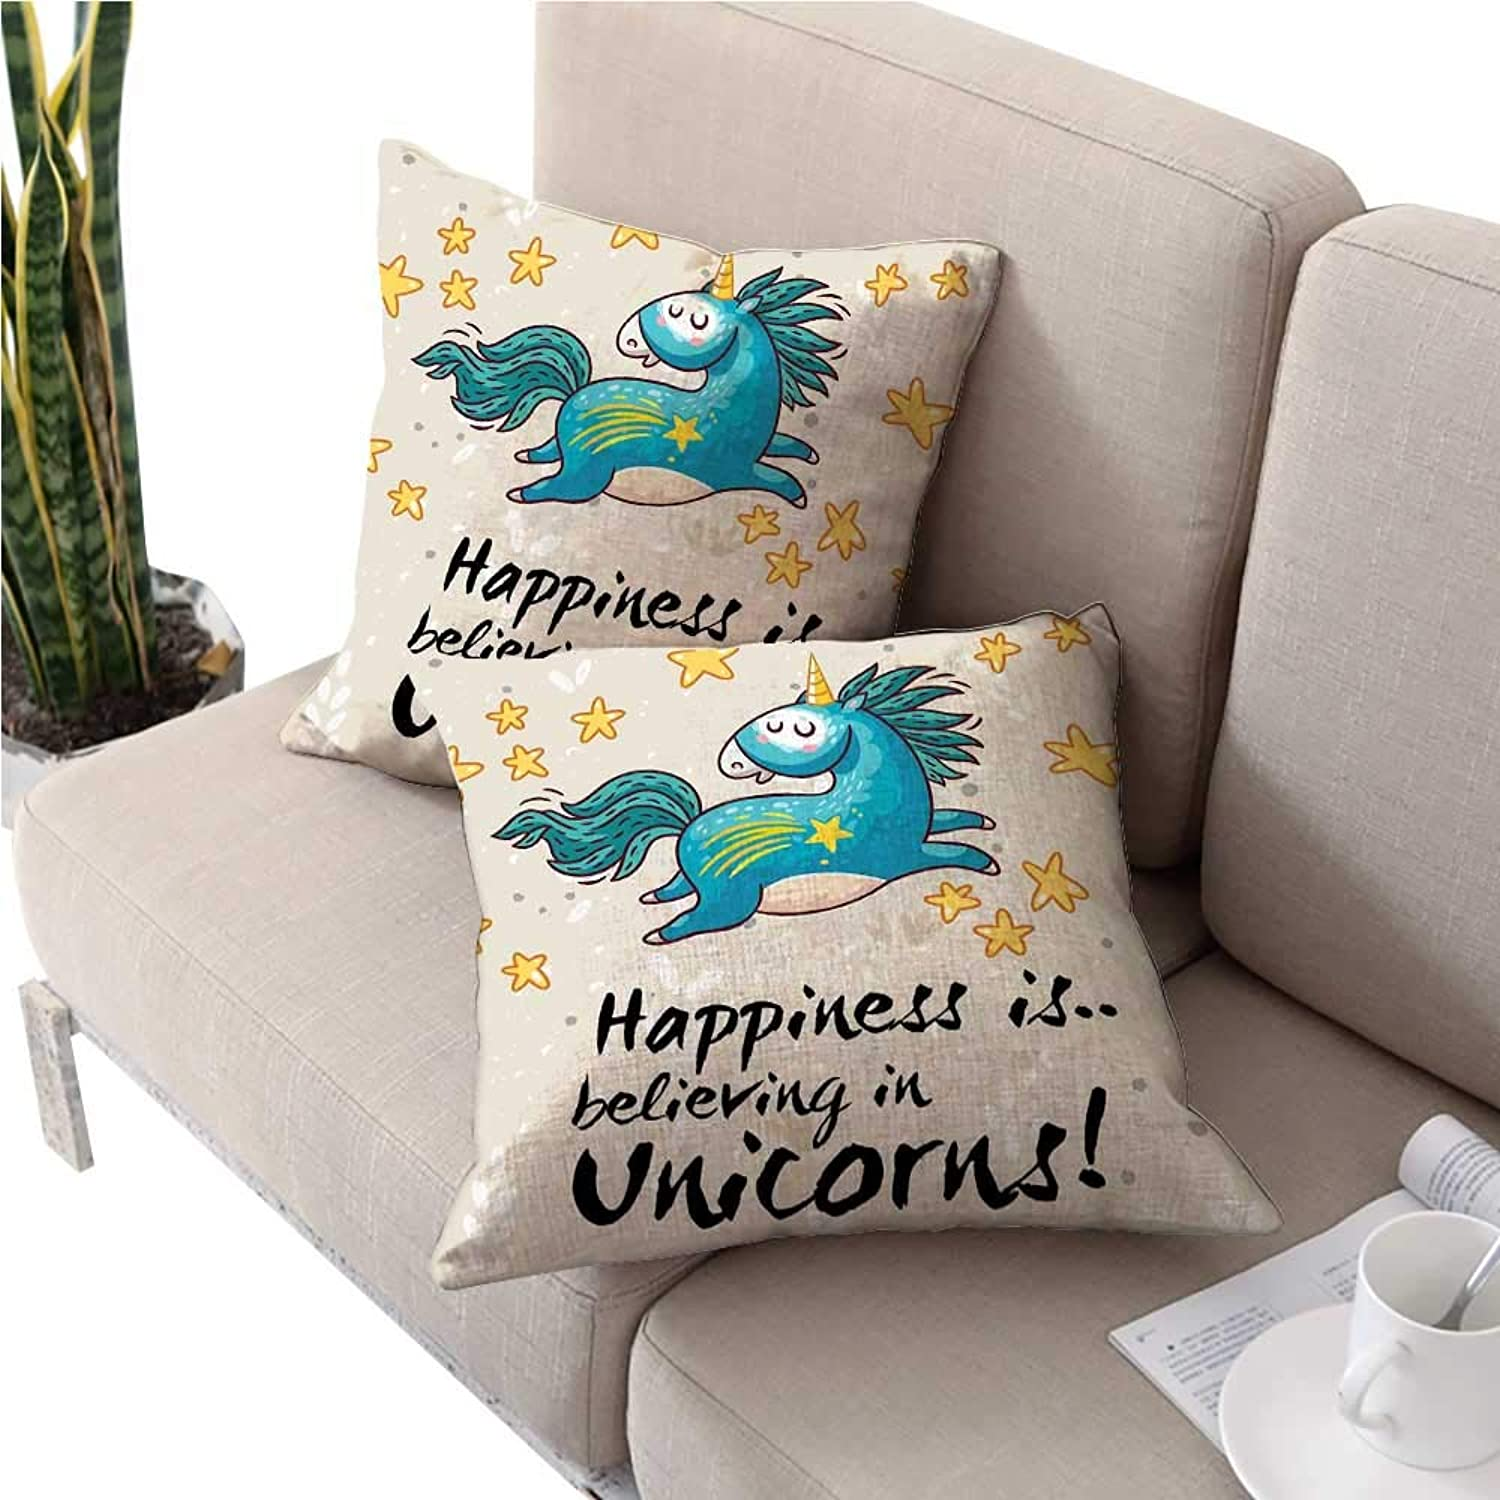 Warmfamily Unicorn Home and Kids Decorcouch Pillow coversBelieving Unicorns Quote Illustration with Star ElementsSquare Cushion Case 28 x28  2 Pcs bluee Yellow